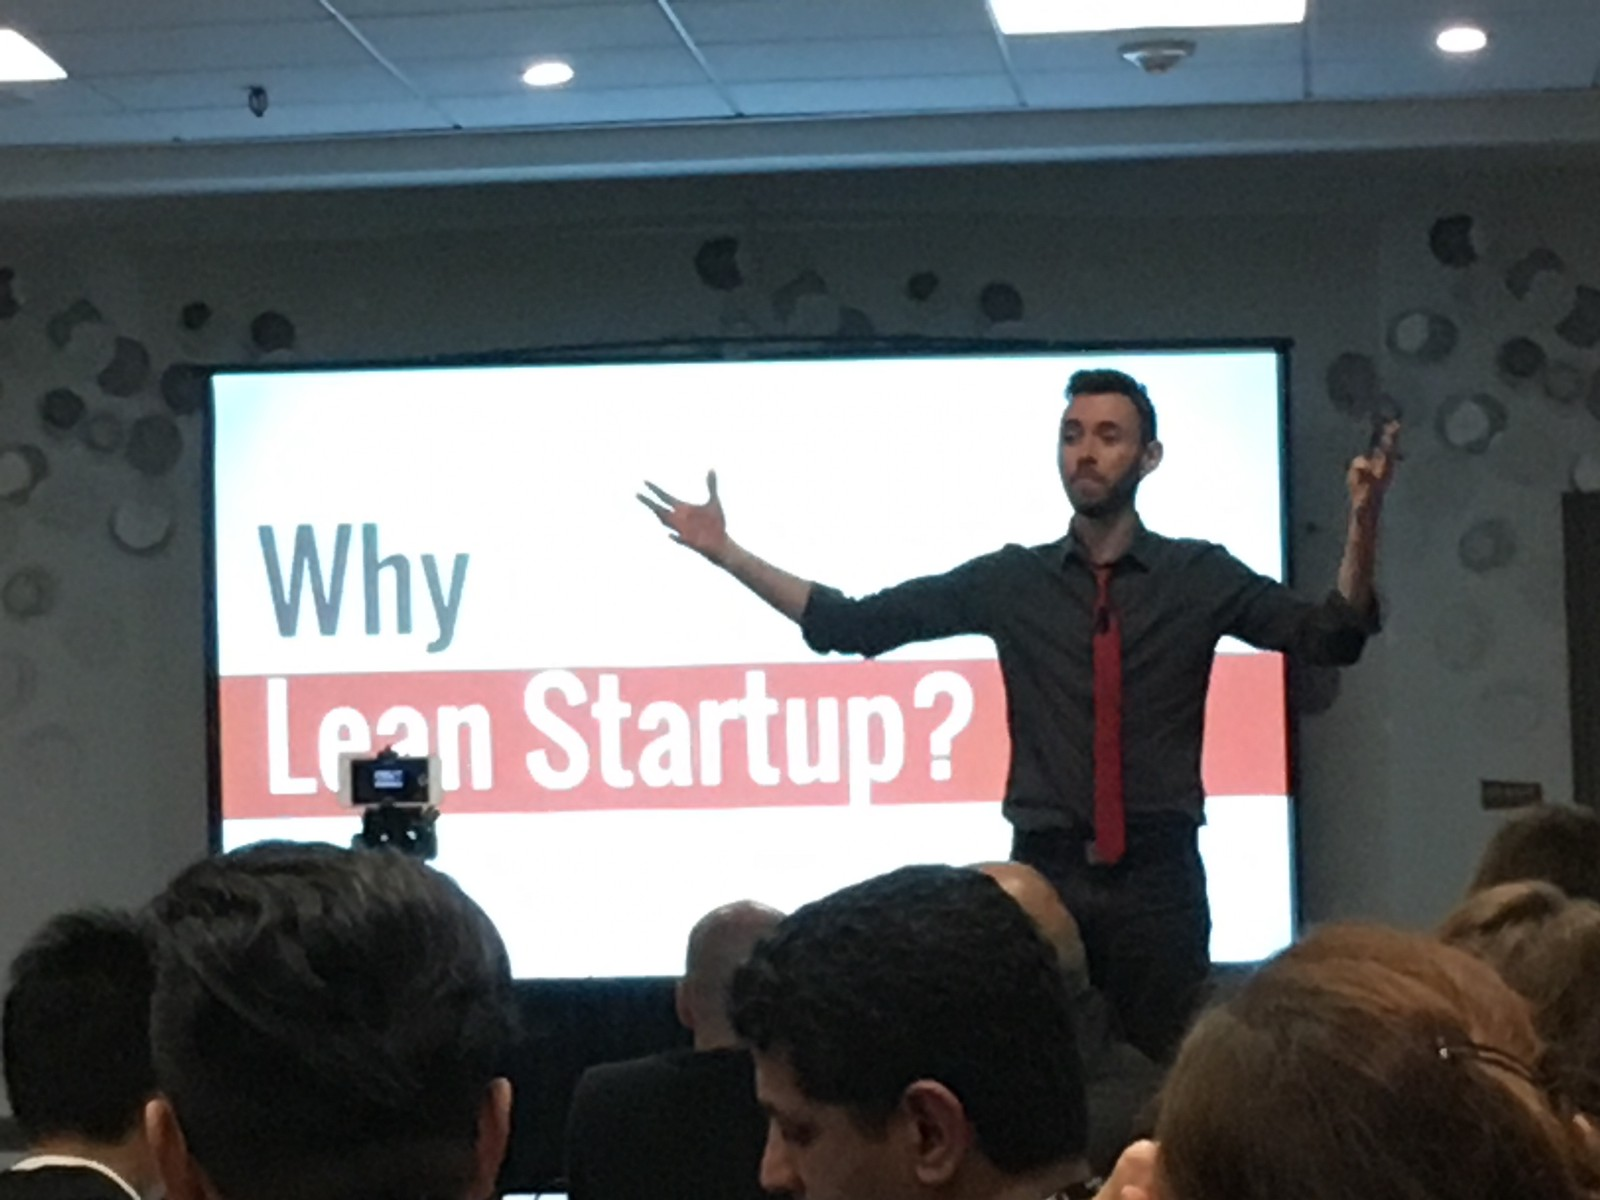 How to (better) teach Lean Startup